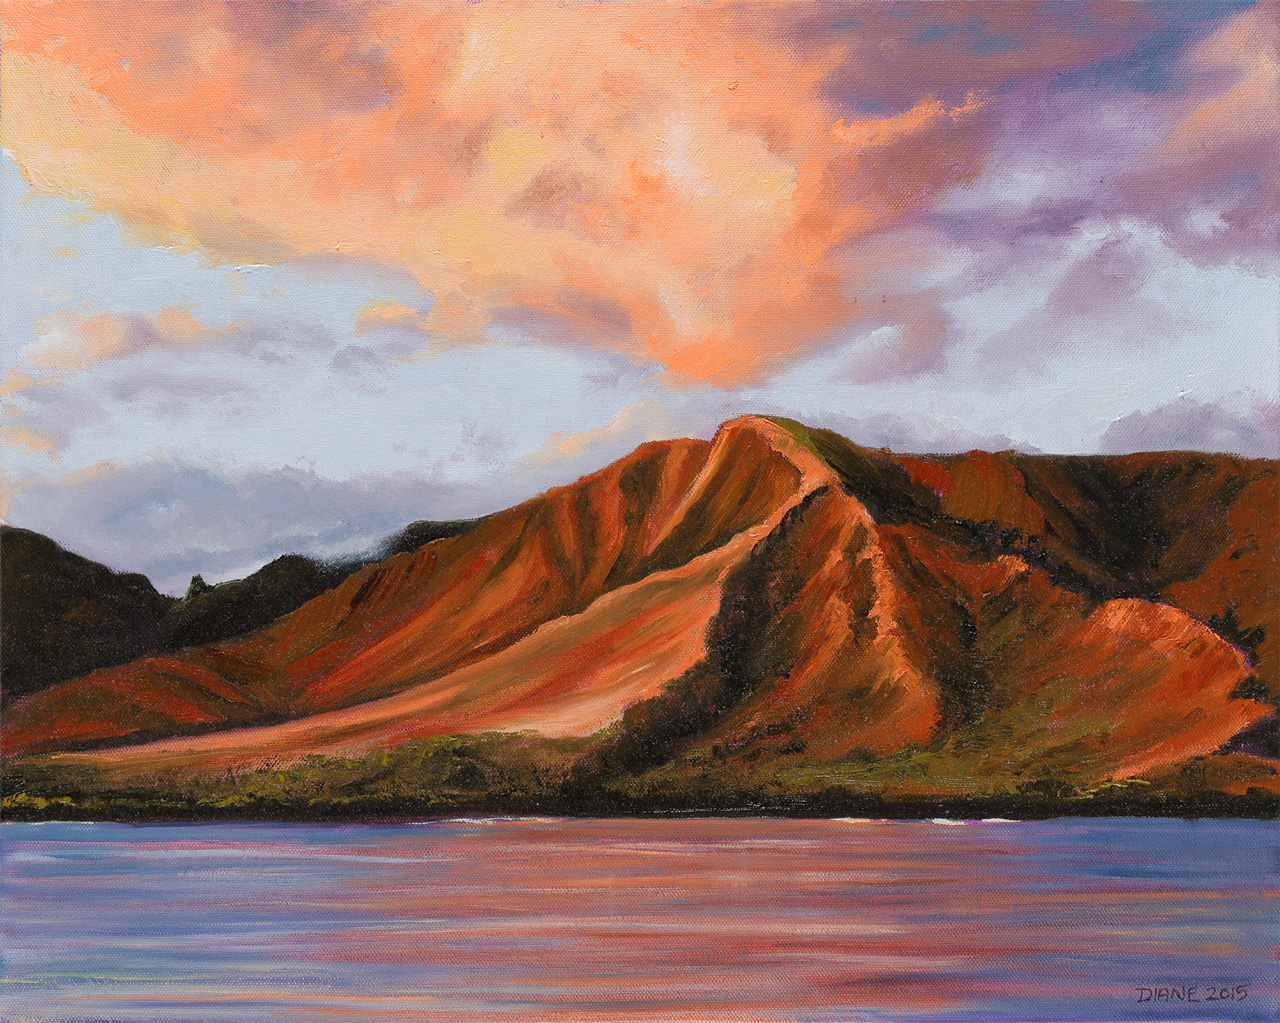 '4th of July Sky Over West Maui Mountains' 16 x 20 Oil on canvas Diane Appler